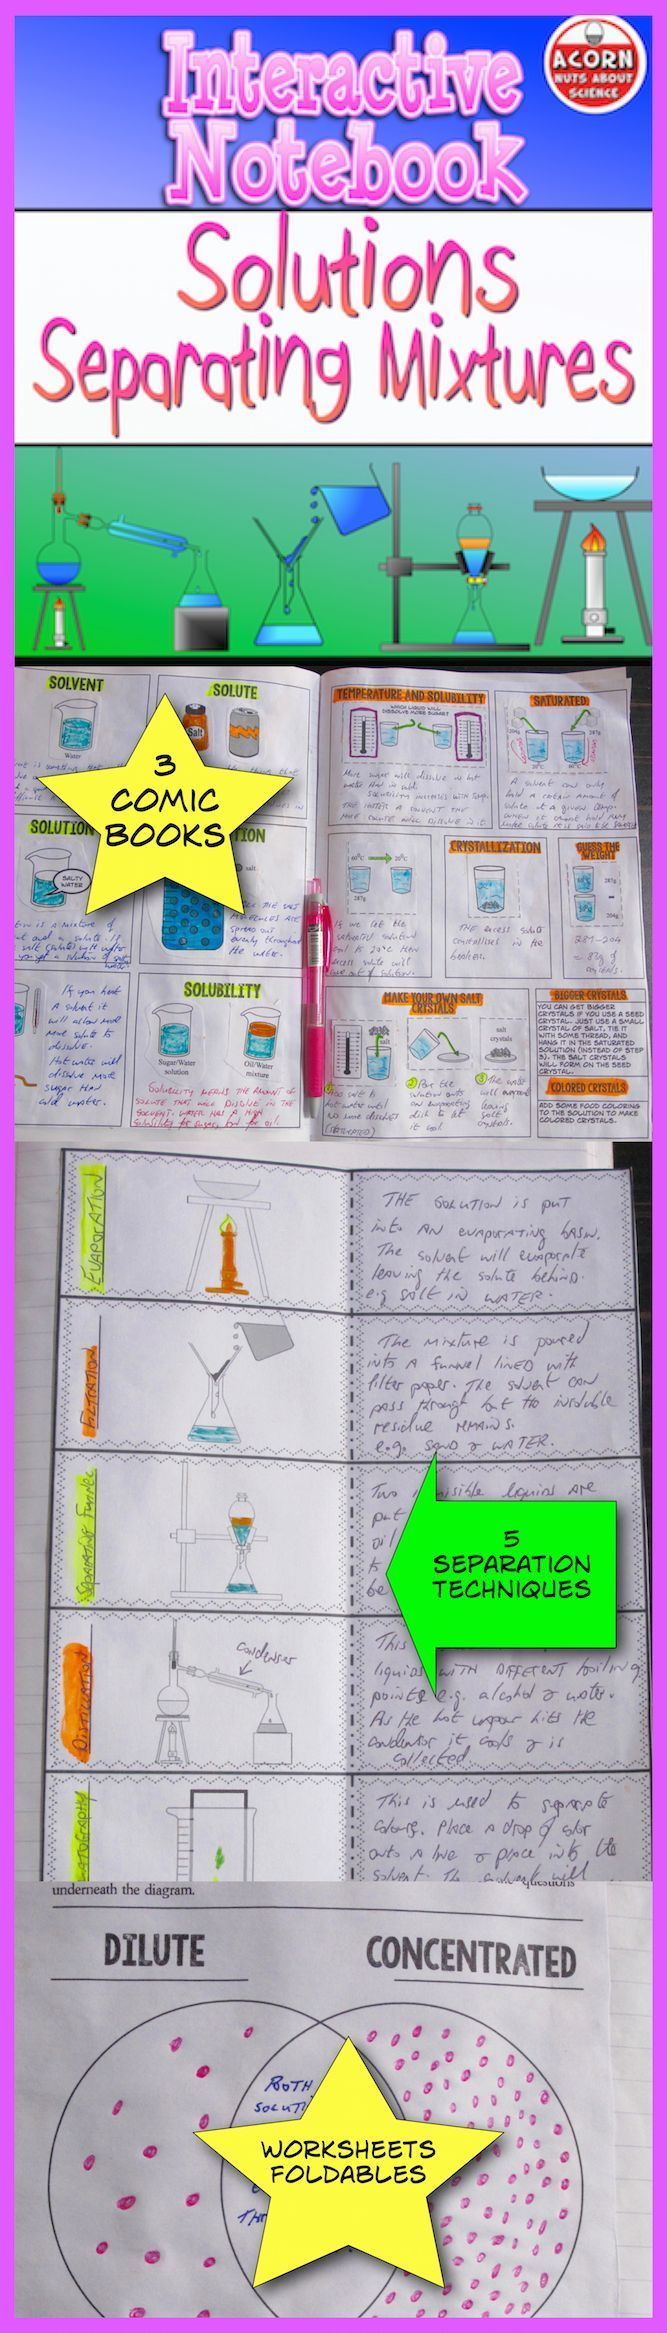 Your students will love these activities for their science interactive notebooks. Solutions, solvents and solutes are covered as are dilute versus concentrated solutions. Separation techniques such as filtration, distillation, evaporation and chromatograp